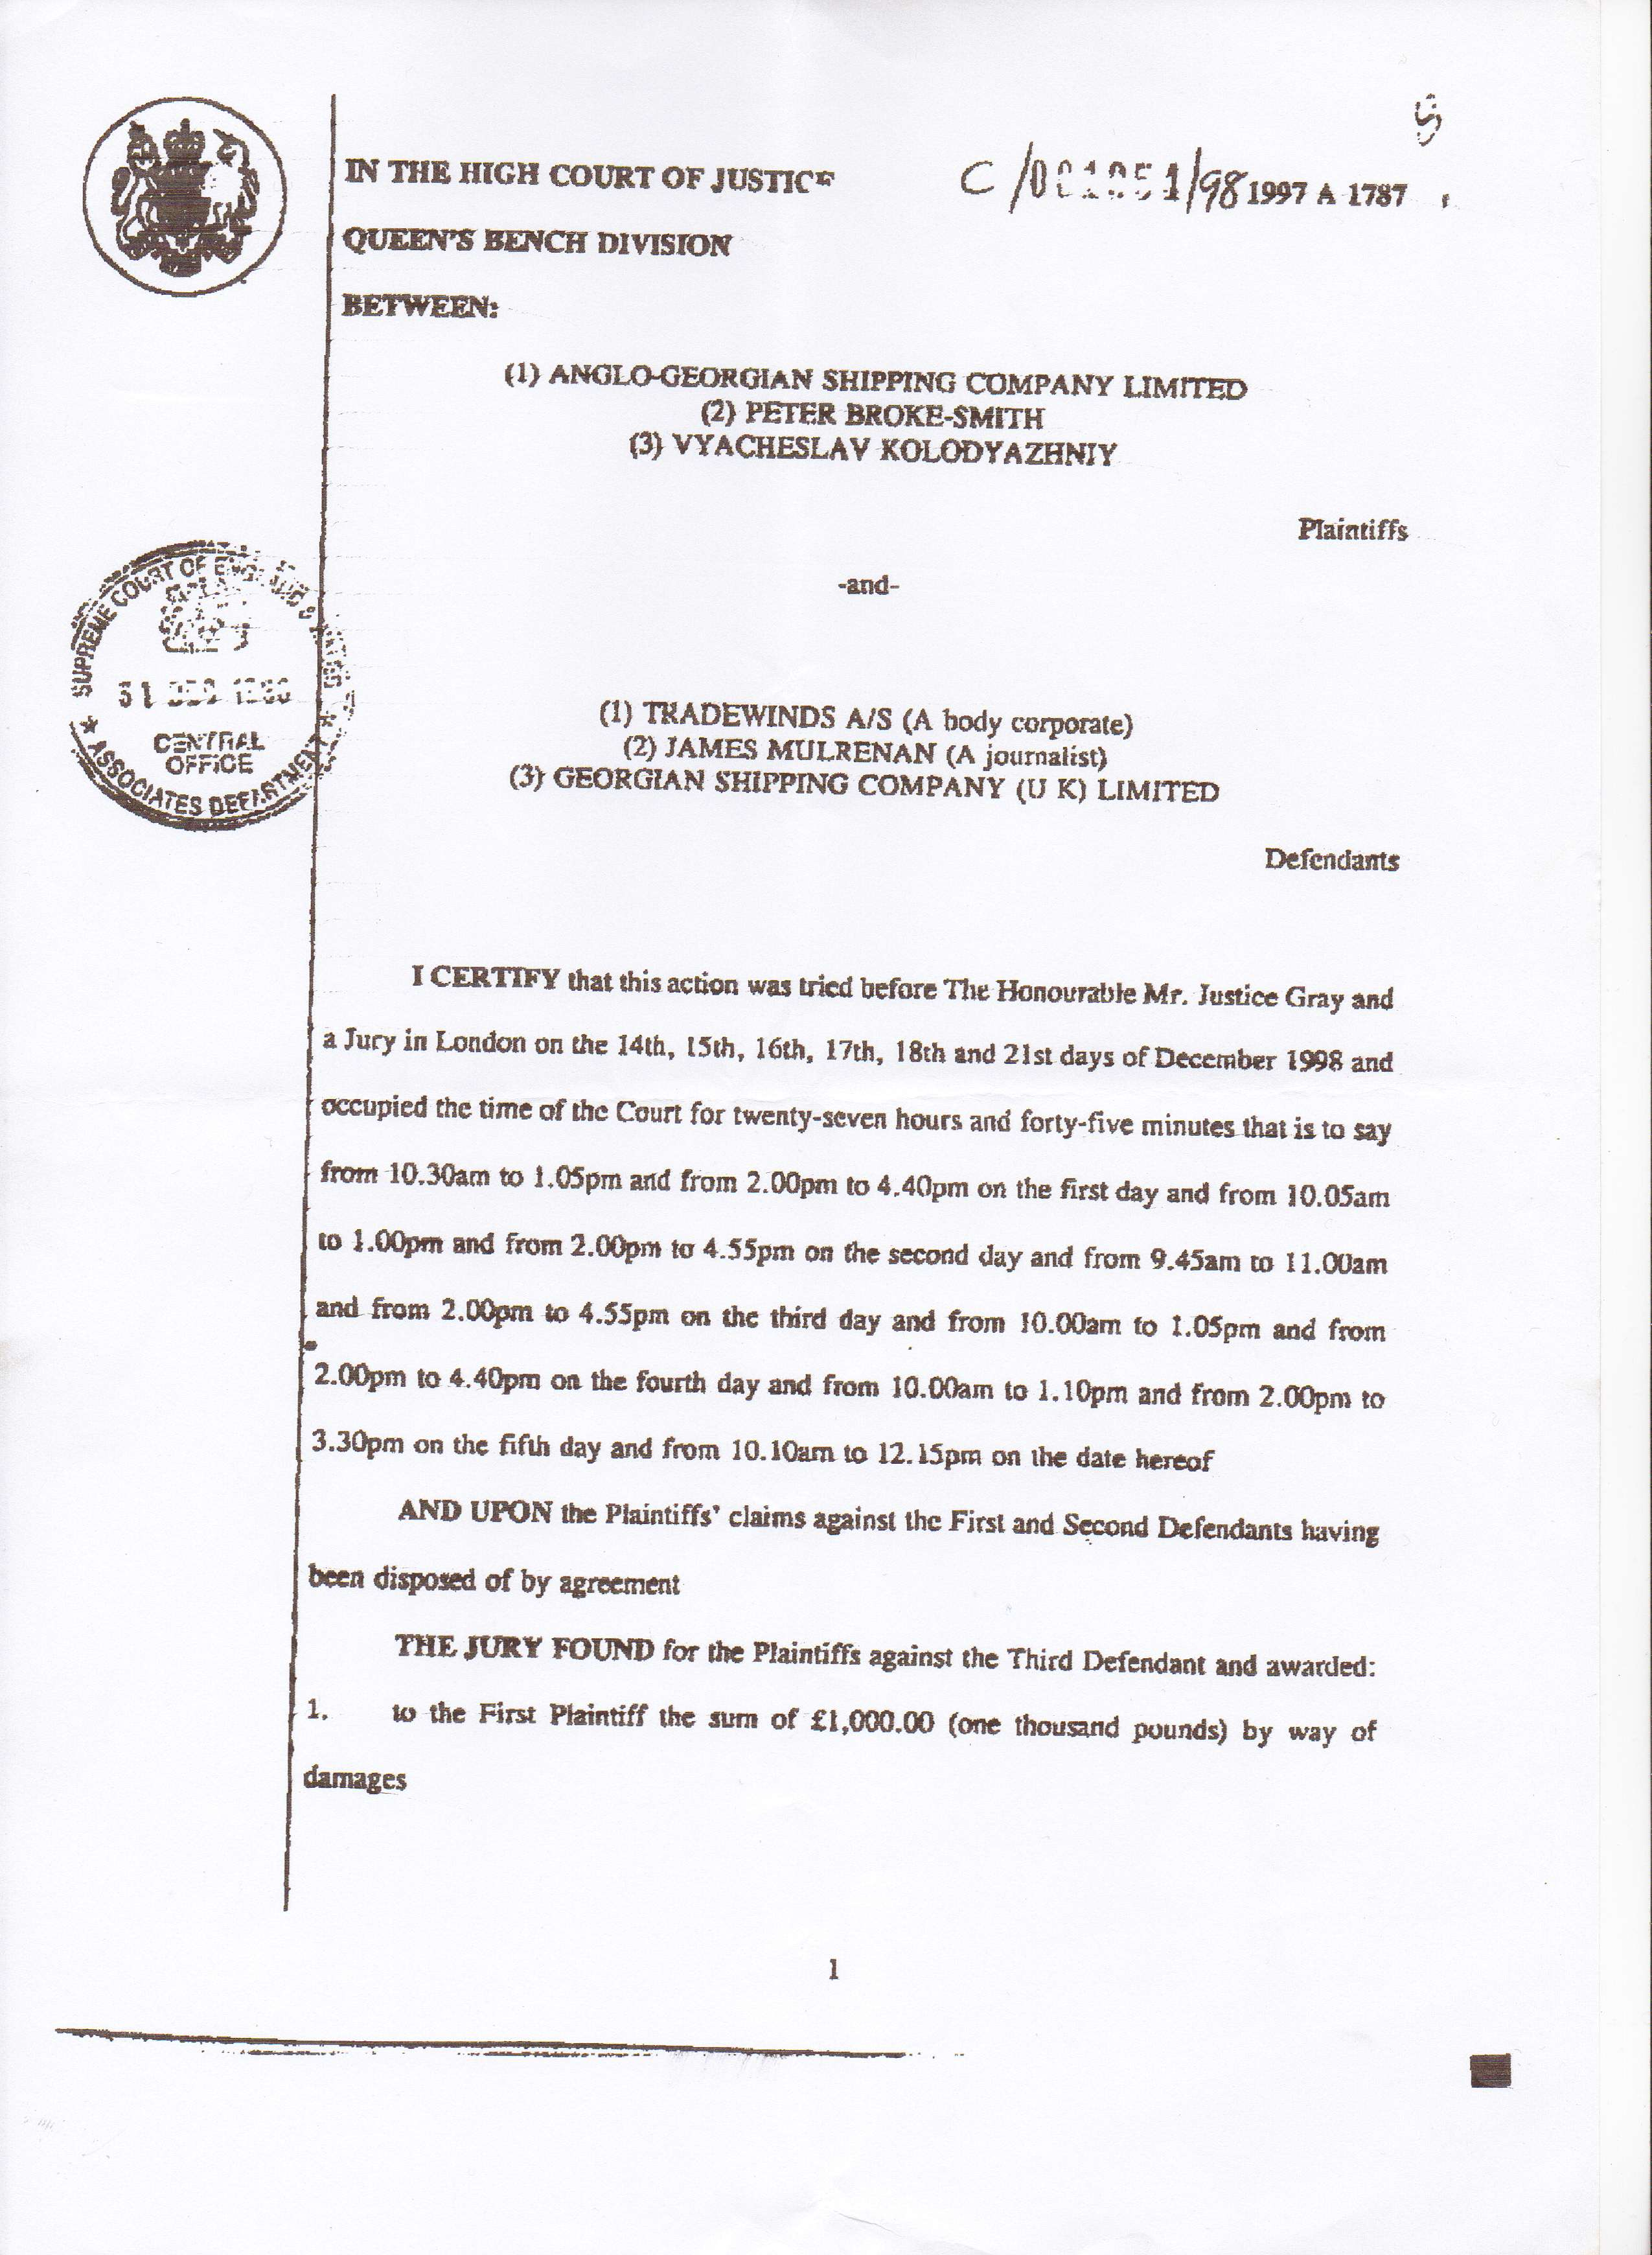 prepare legal document for the court